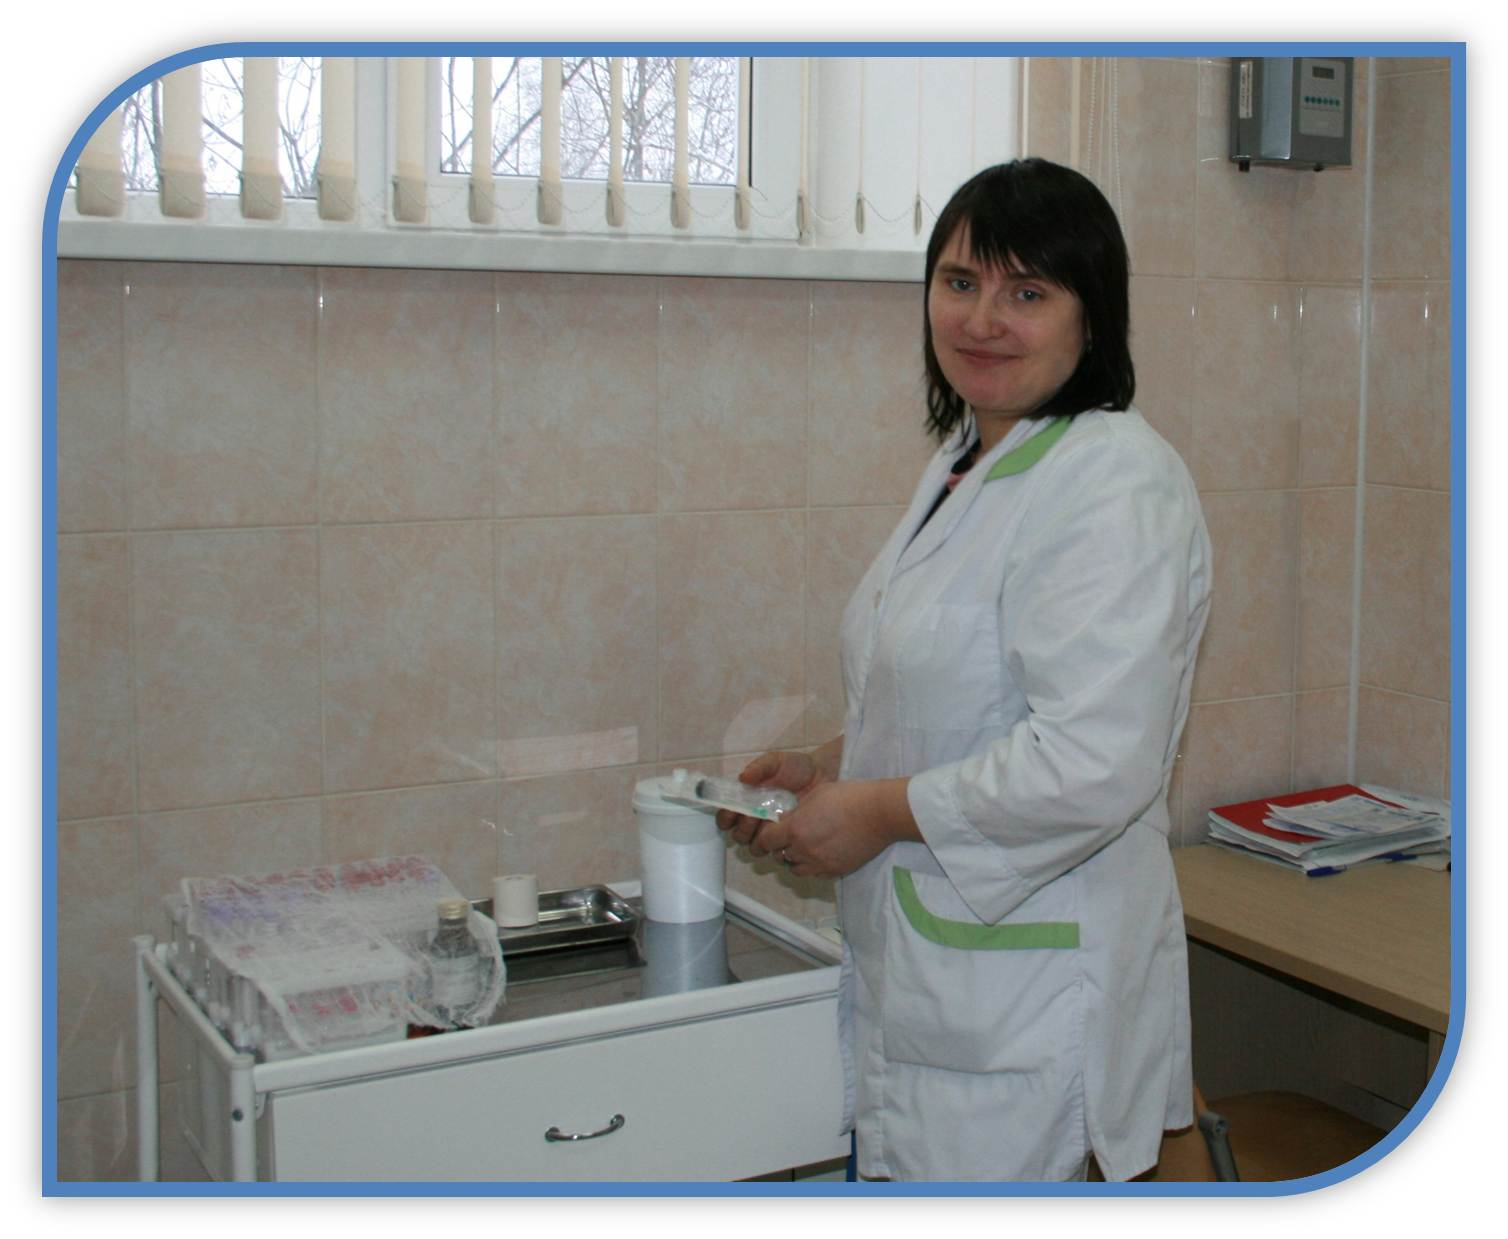 Treatment room Kochetova Galina Y., medical center Shuya